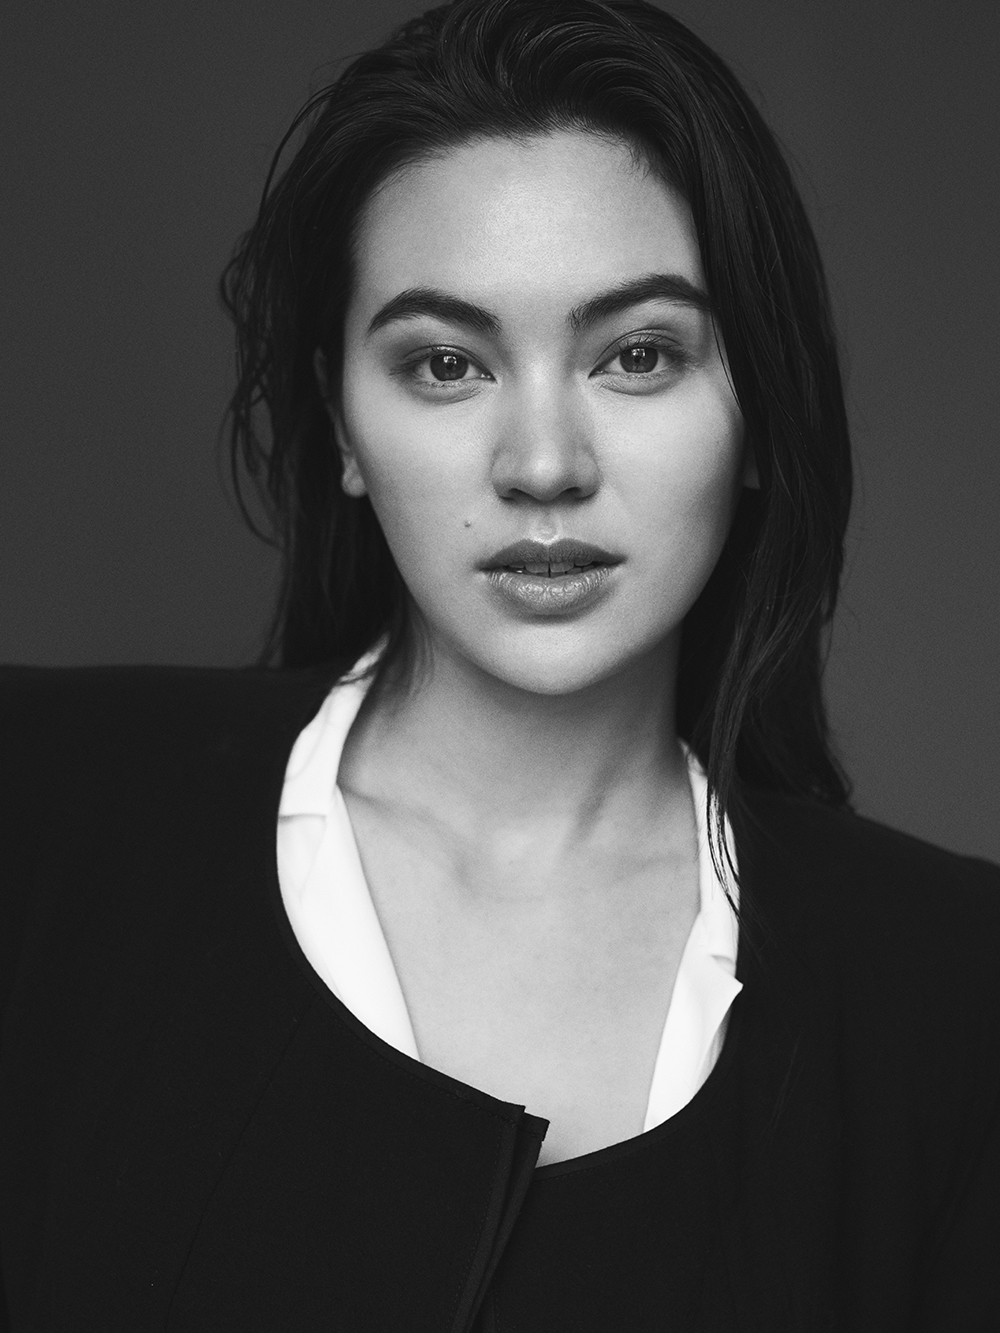 Jessica Henwick (born 1992) nudes (97 photo), Topless, Fappening, Feet, cameltoe 2017